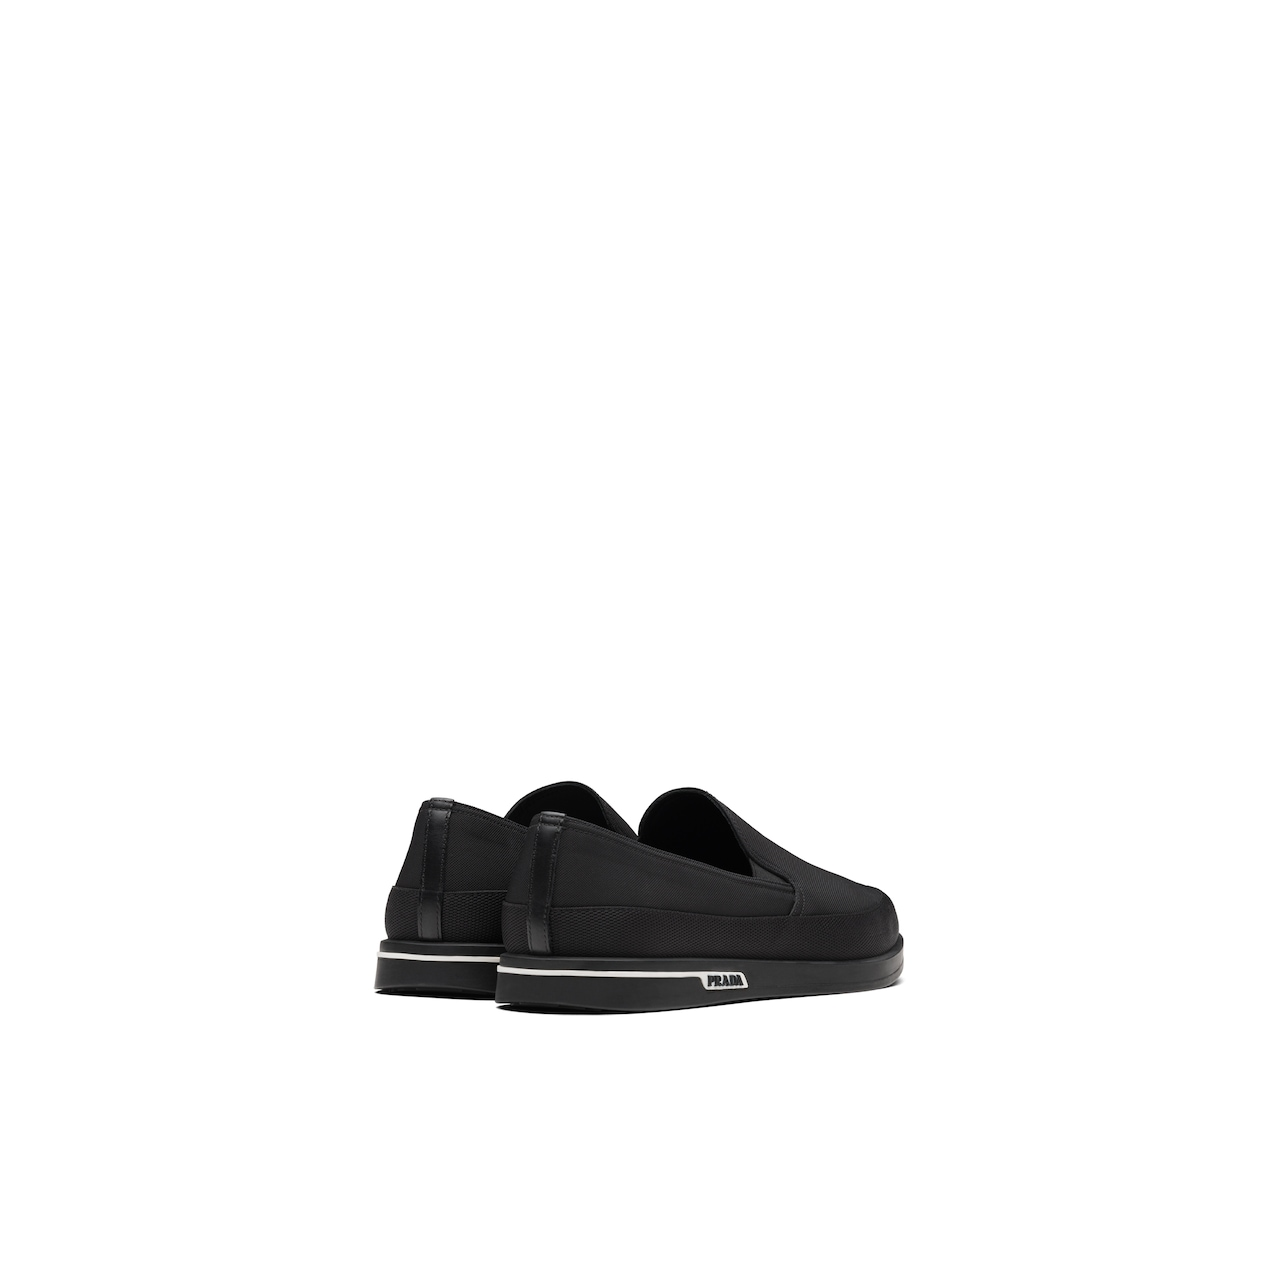 Saint Tropez Technical Fabric Slip-On Sneakers 5